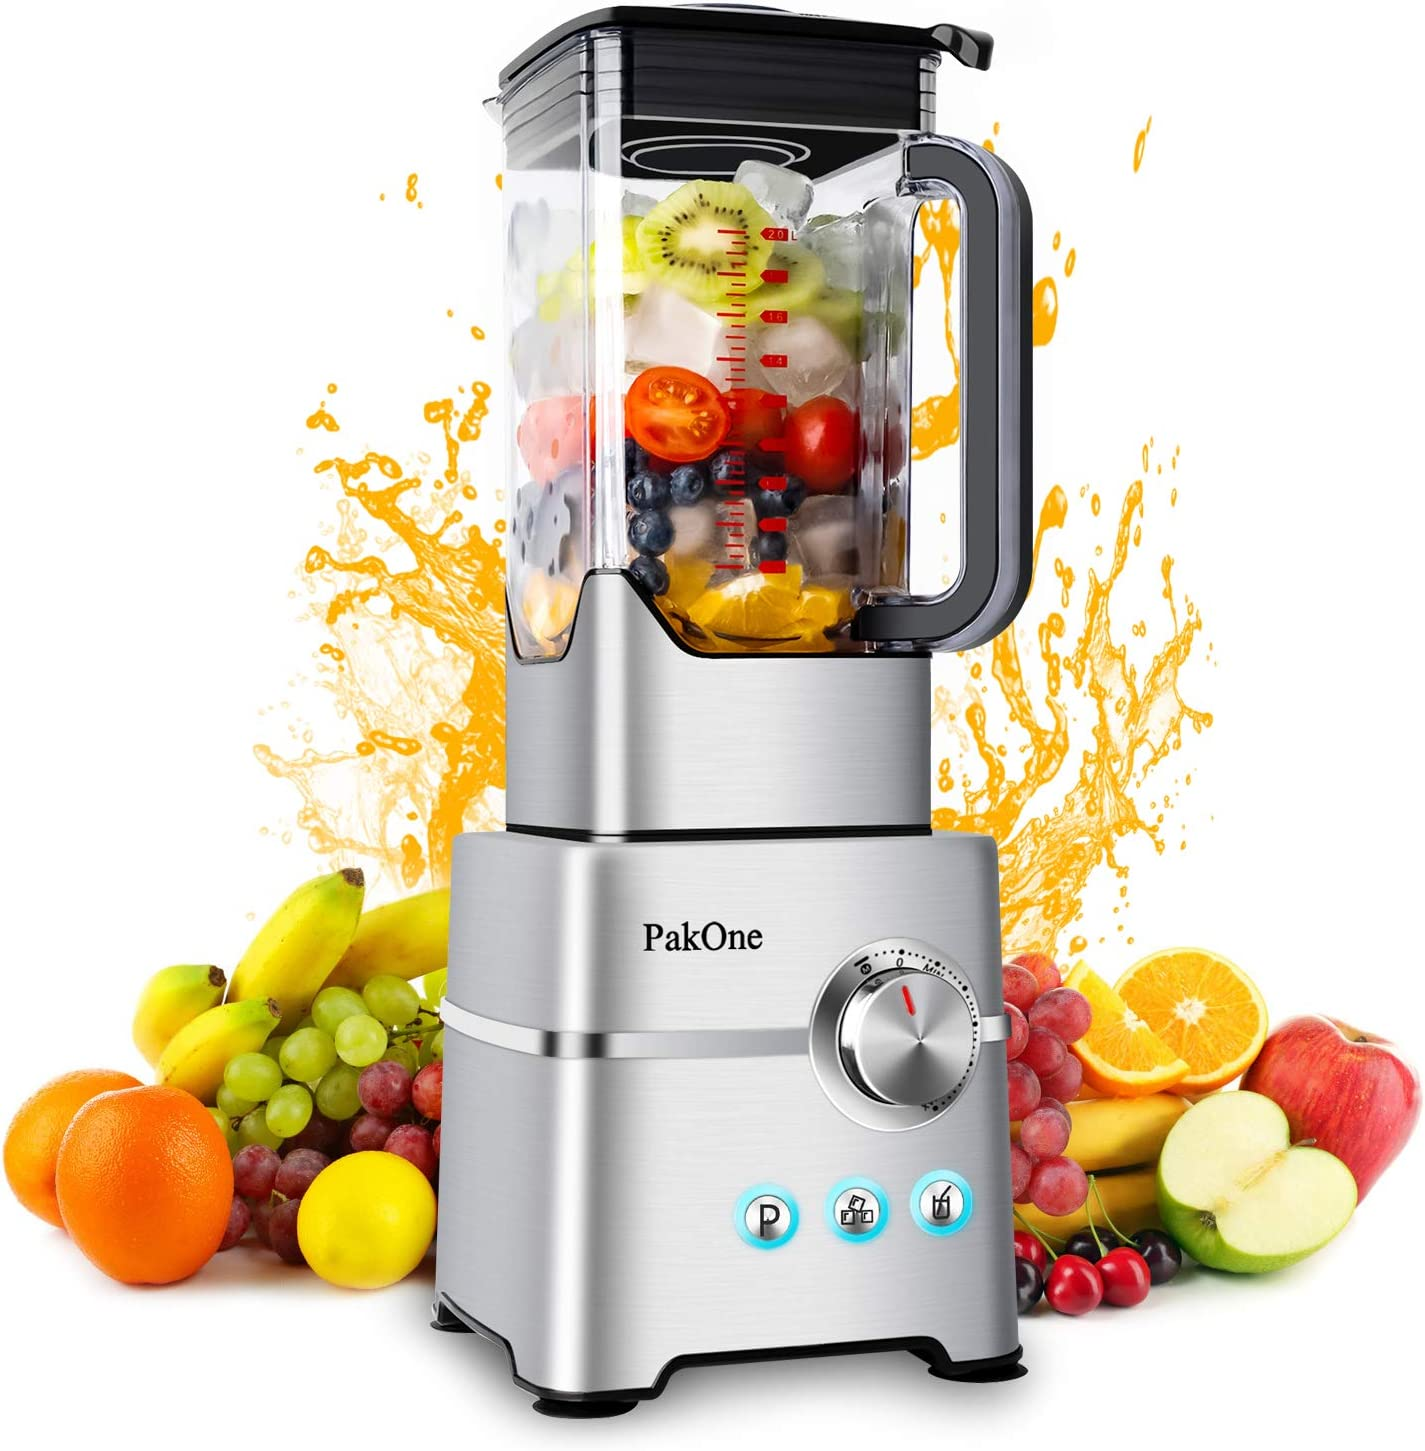 Blender Smoothie Professional Countertop Blender for Kitchen with 1800W Base,Variable speeds Control,for Puree,juices,shakes,sauces 2L Glass Jar,6 Sharp Blade Smoothies,Grind, Shakes, Ice Crush (Only)